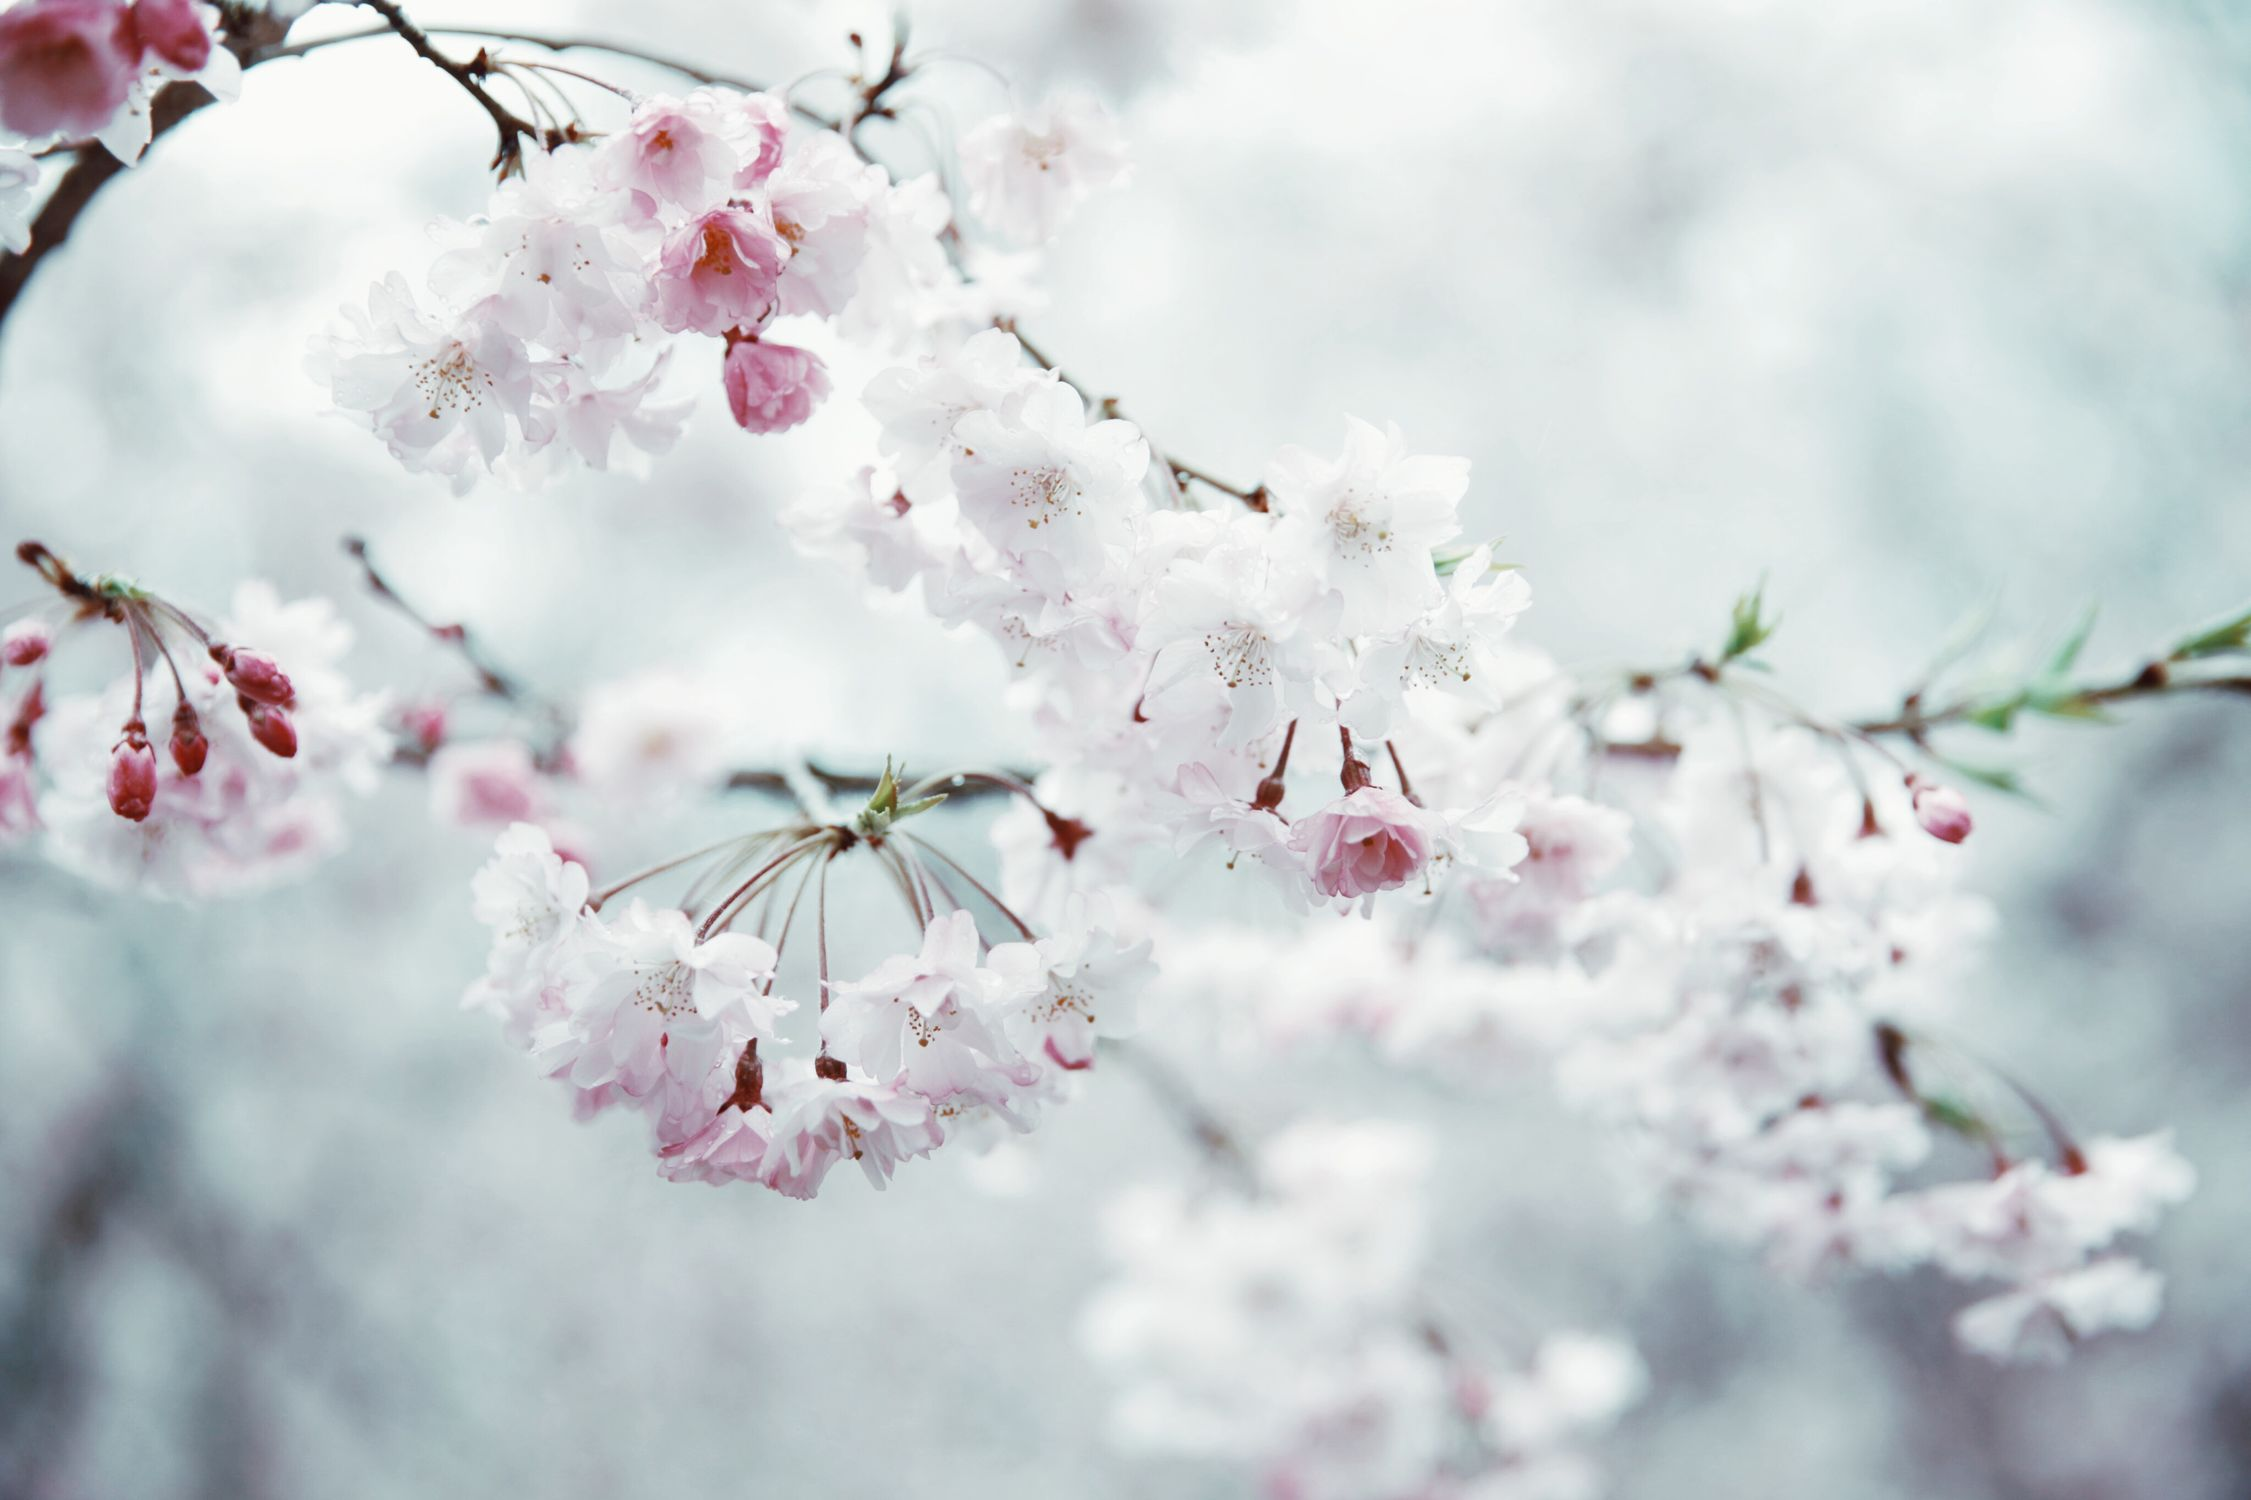 close-up focus on foreground flowers Hello world EyeEmNewHere flower blossom fragility beauty in Nature Cherry blossom springtime branch Growth Nature Tree cherry tree petal Freshness twig botany pink color no people